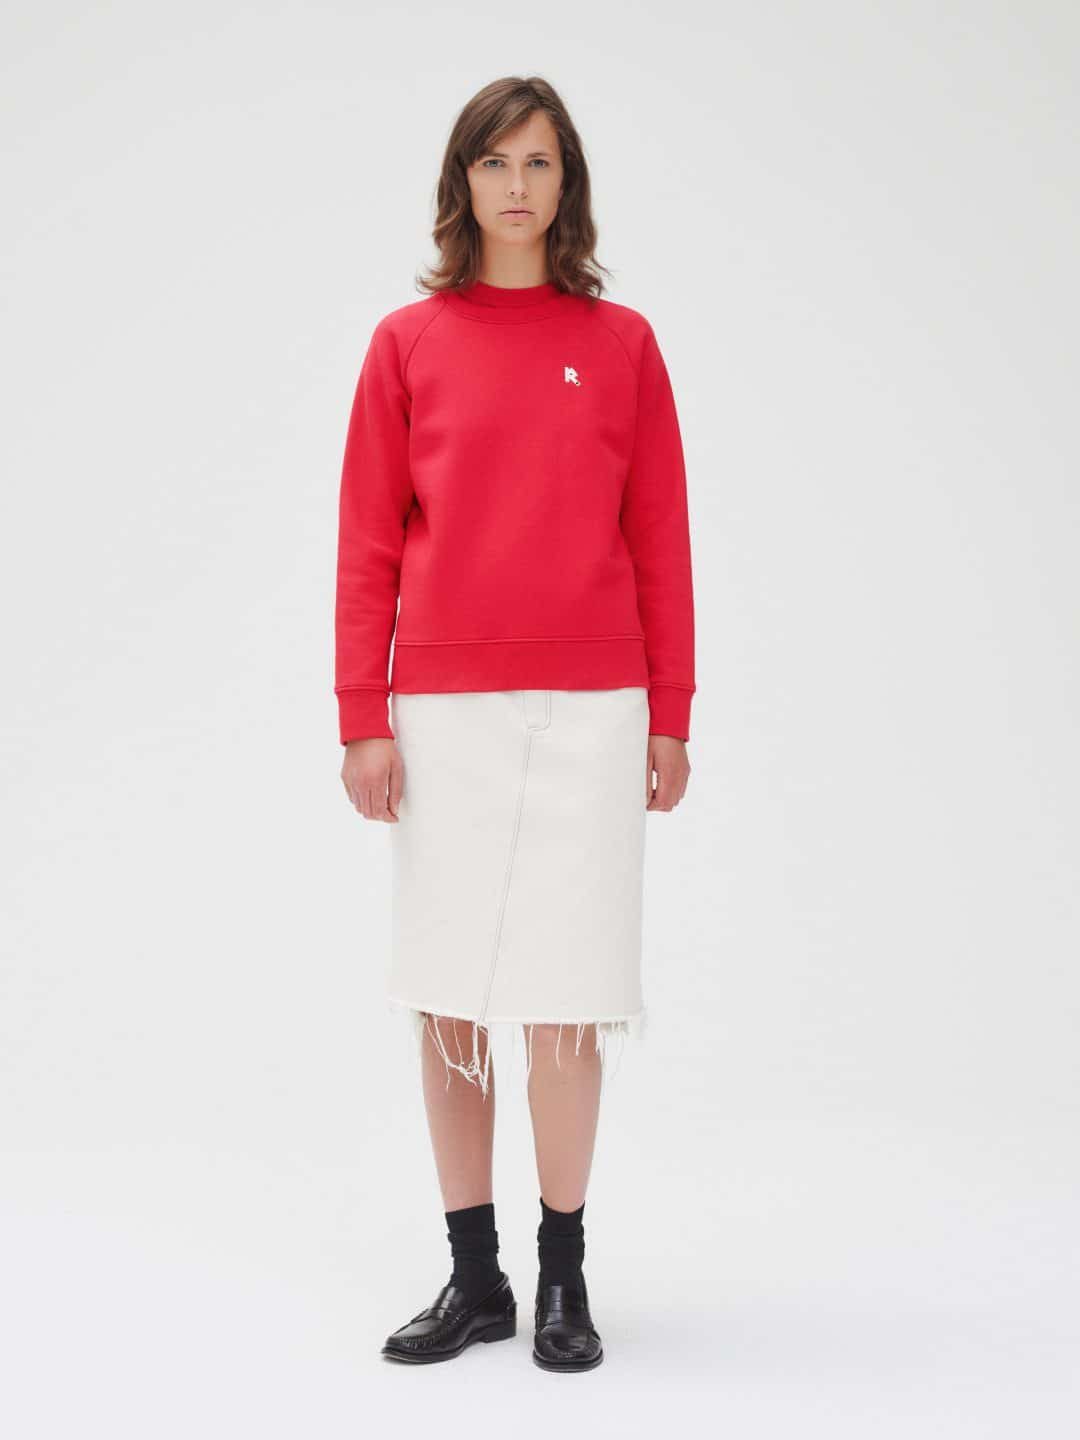 PARIS_SWEATER_RED_RIKA_STUDIOS_AMSTERDAM